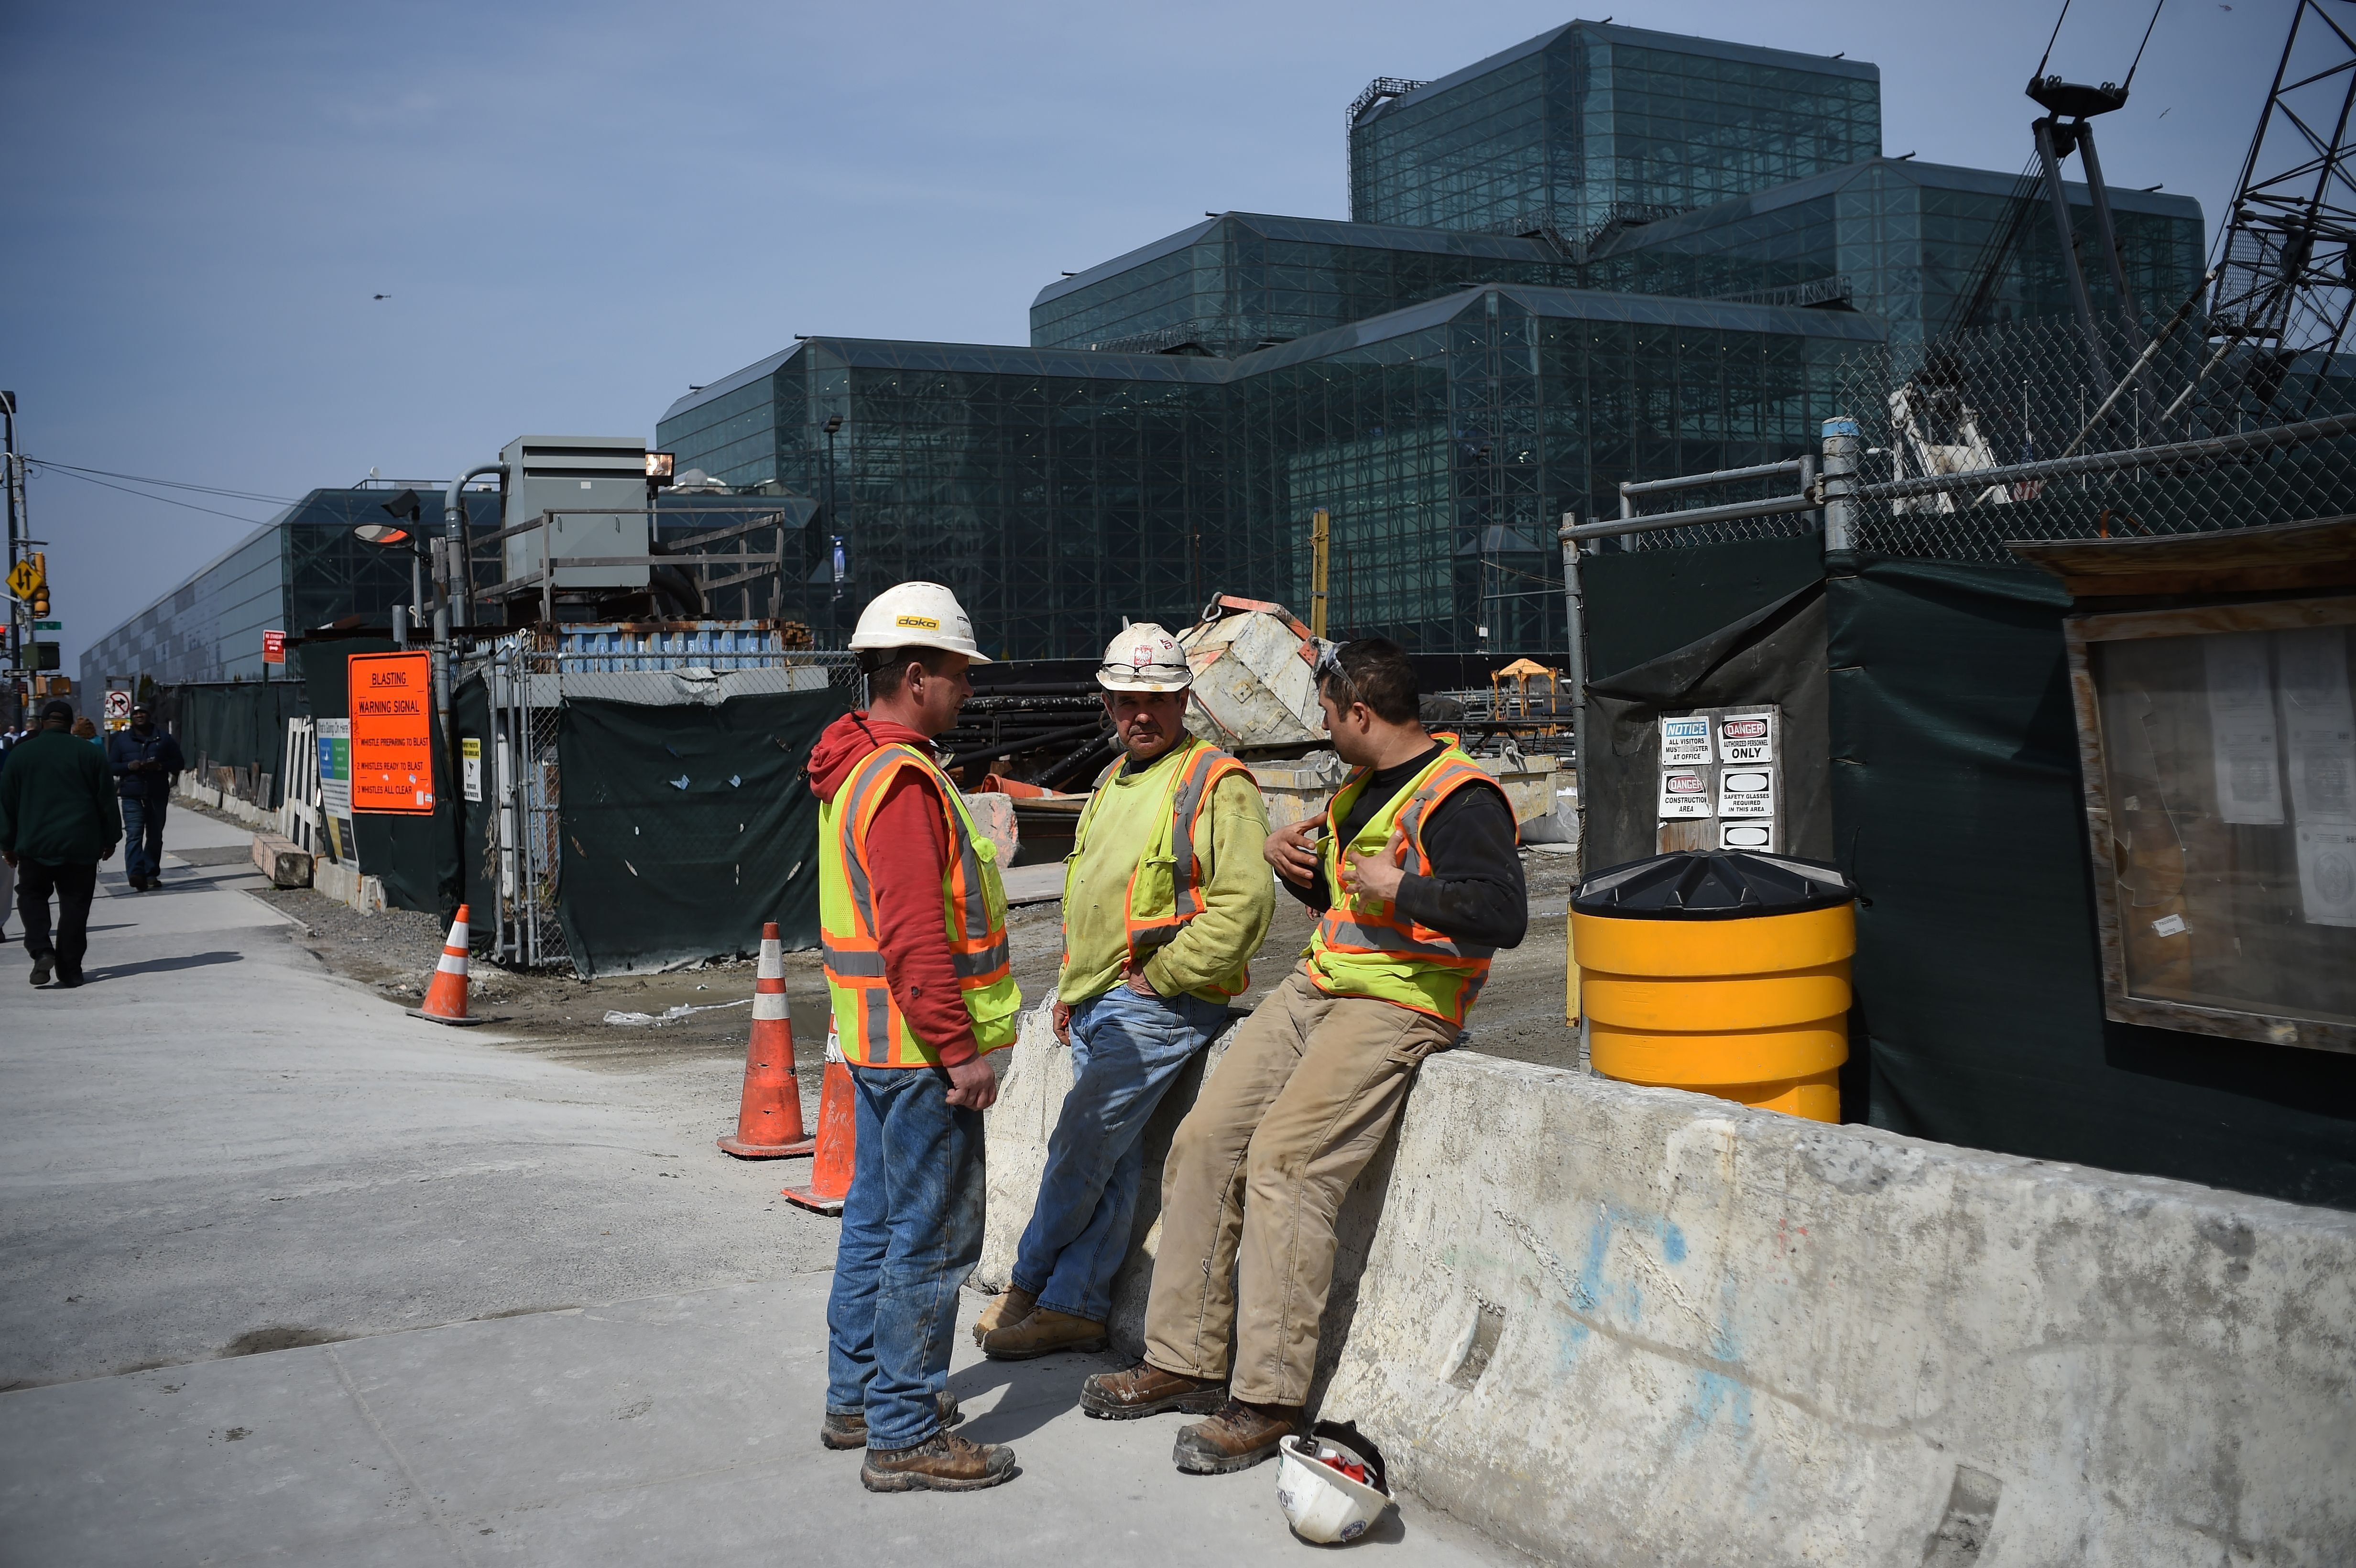 Construction workers chat during their break at a building site in New York on March 24, 2016. Latinos are over-represented i